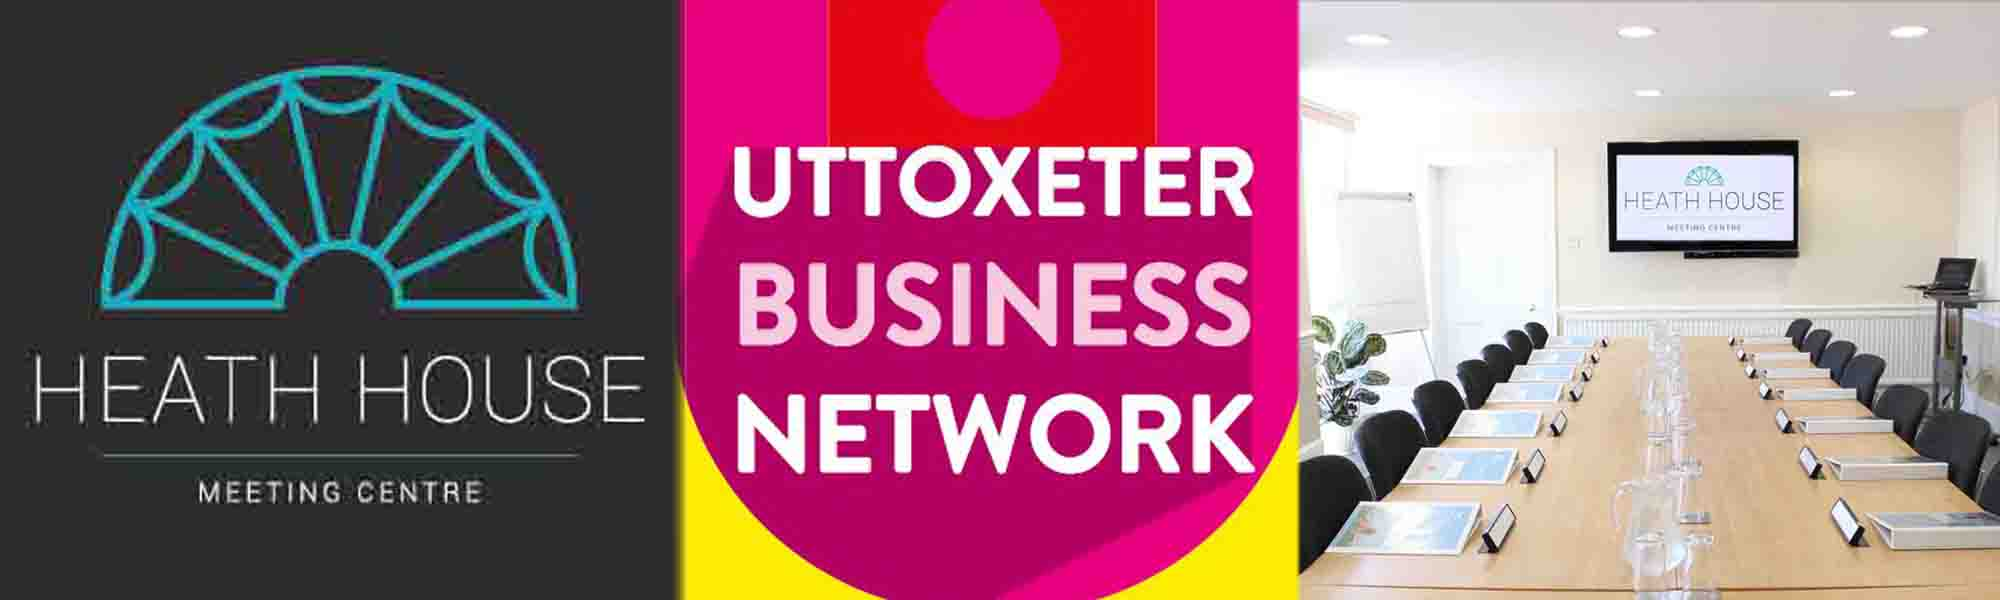 Heath House Conference Centre - Uttoxeter Business Network UBN